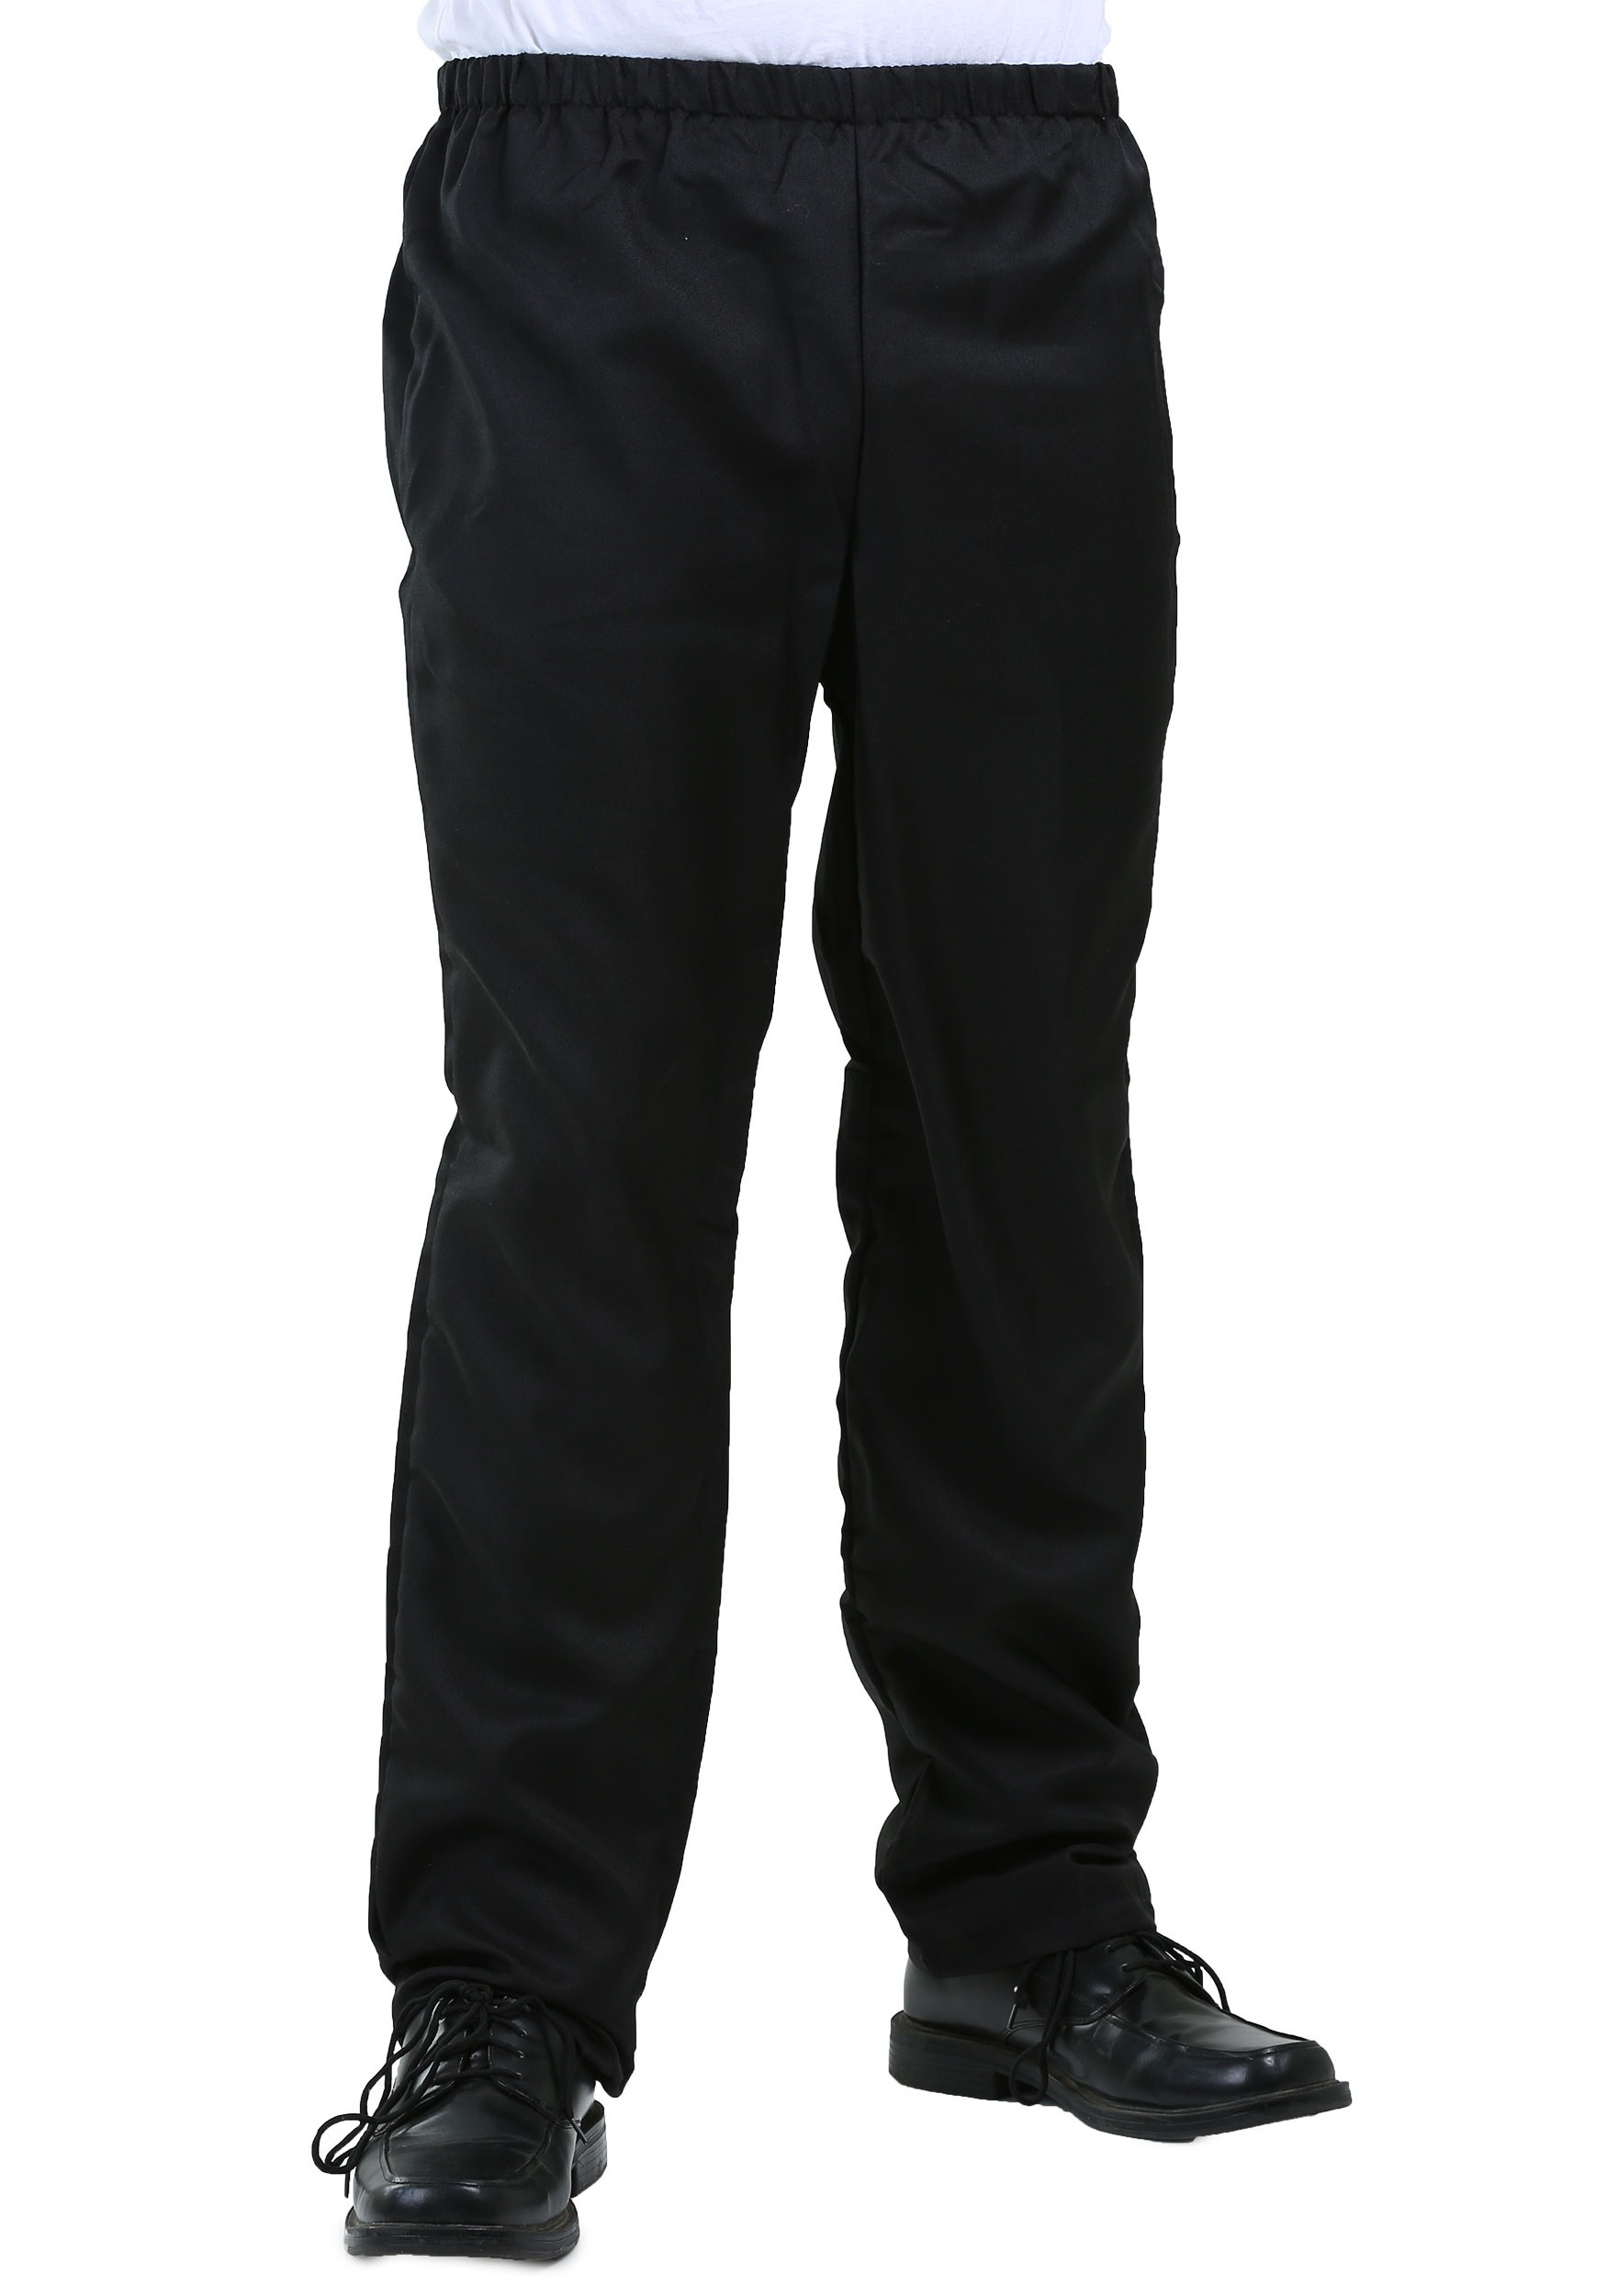 Joseph & Feiss Boys Black Husky Suit Separates Slacks. Unlike a chino, which is % cotton, these have a bit of spandex which makes them wrinkle resistant and comfy for work.